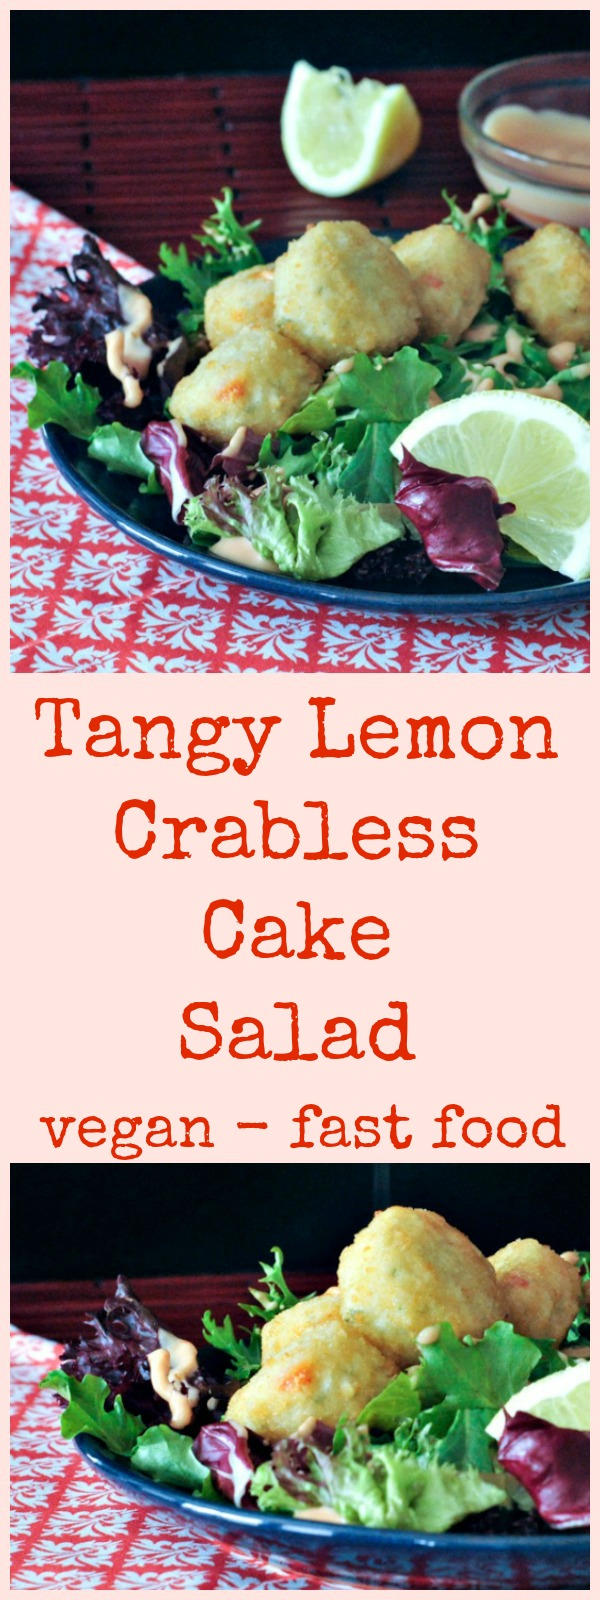 Tangy Lemon Crabless Cake Salad @spabettie #vegan #dairyfree #easy